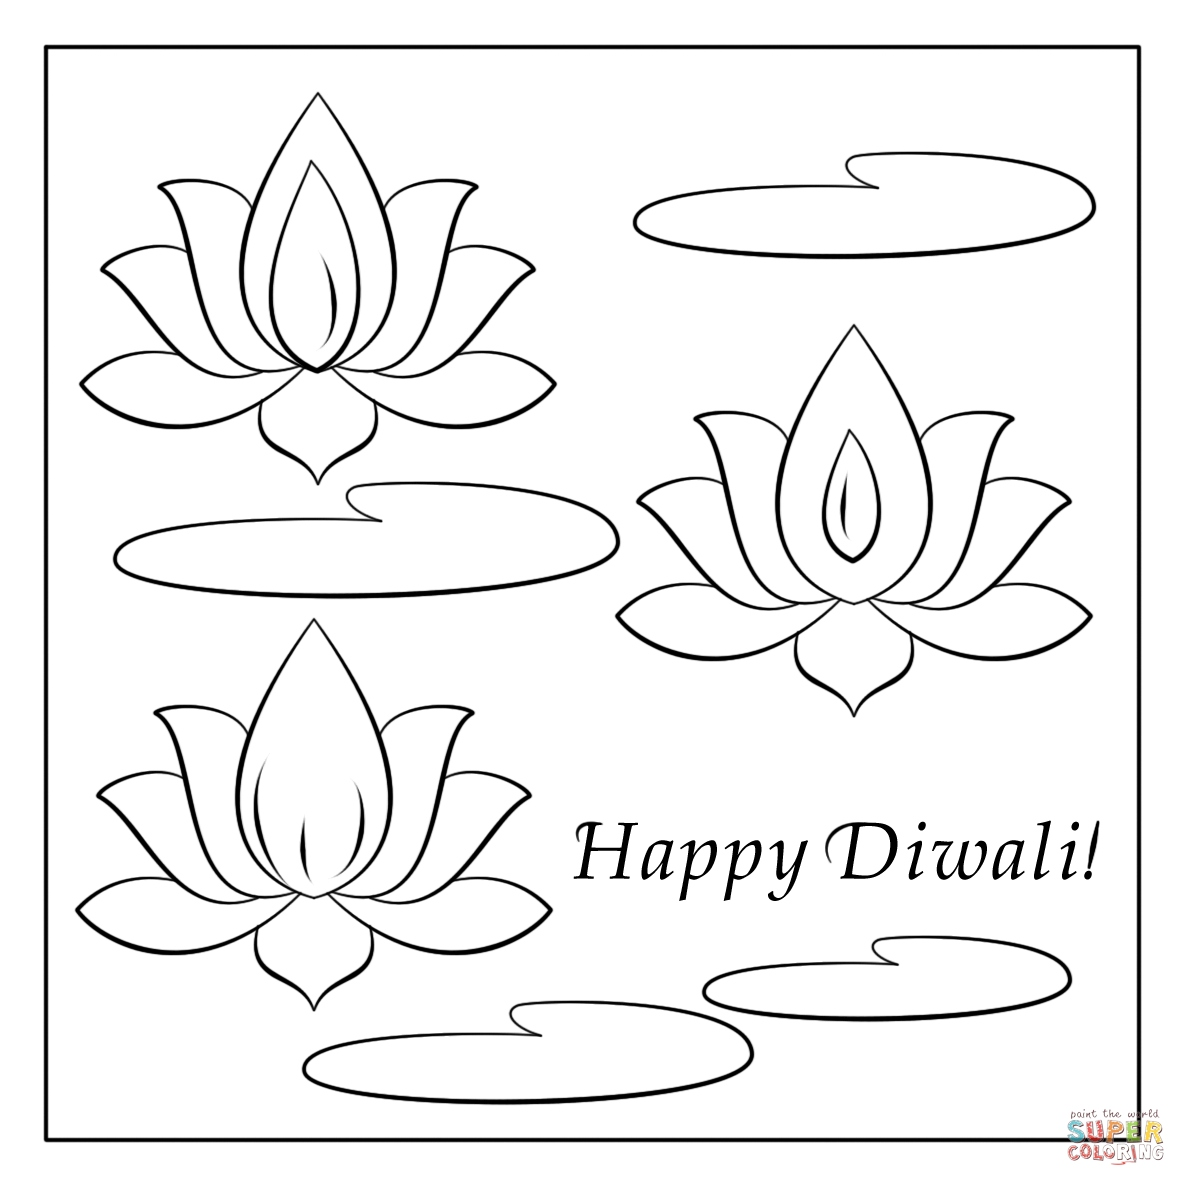 Diwali Colouring Pages At Getcolorings